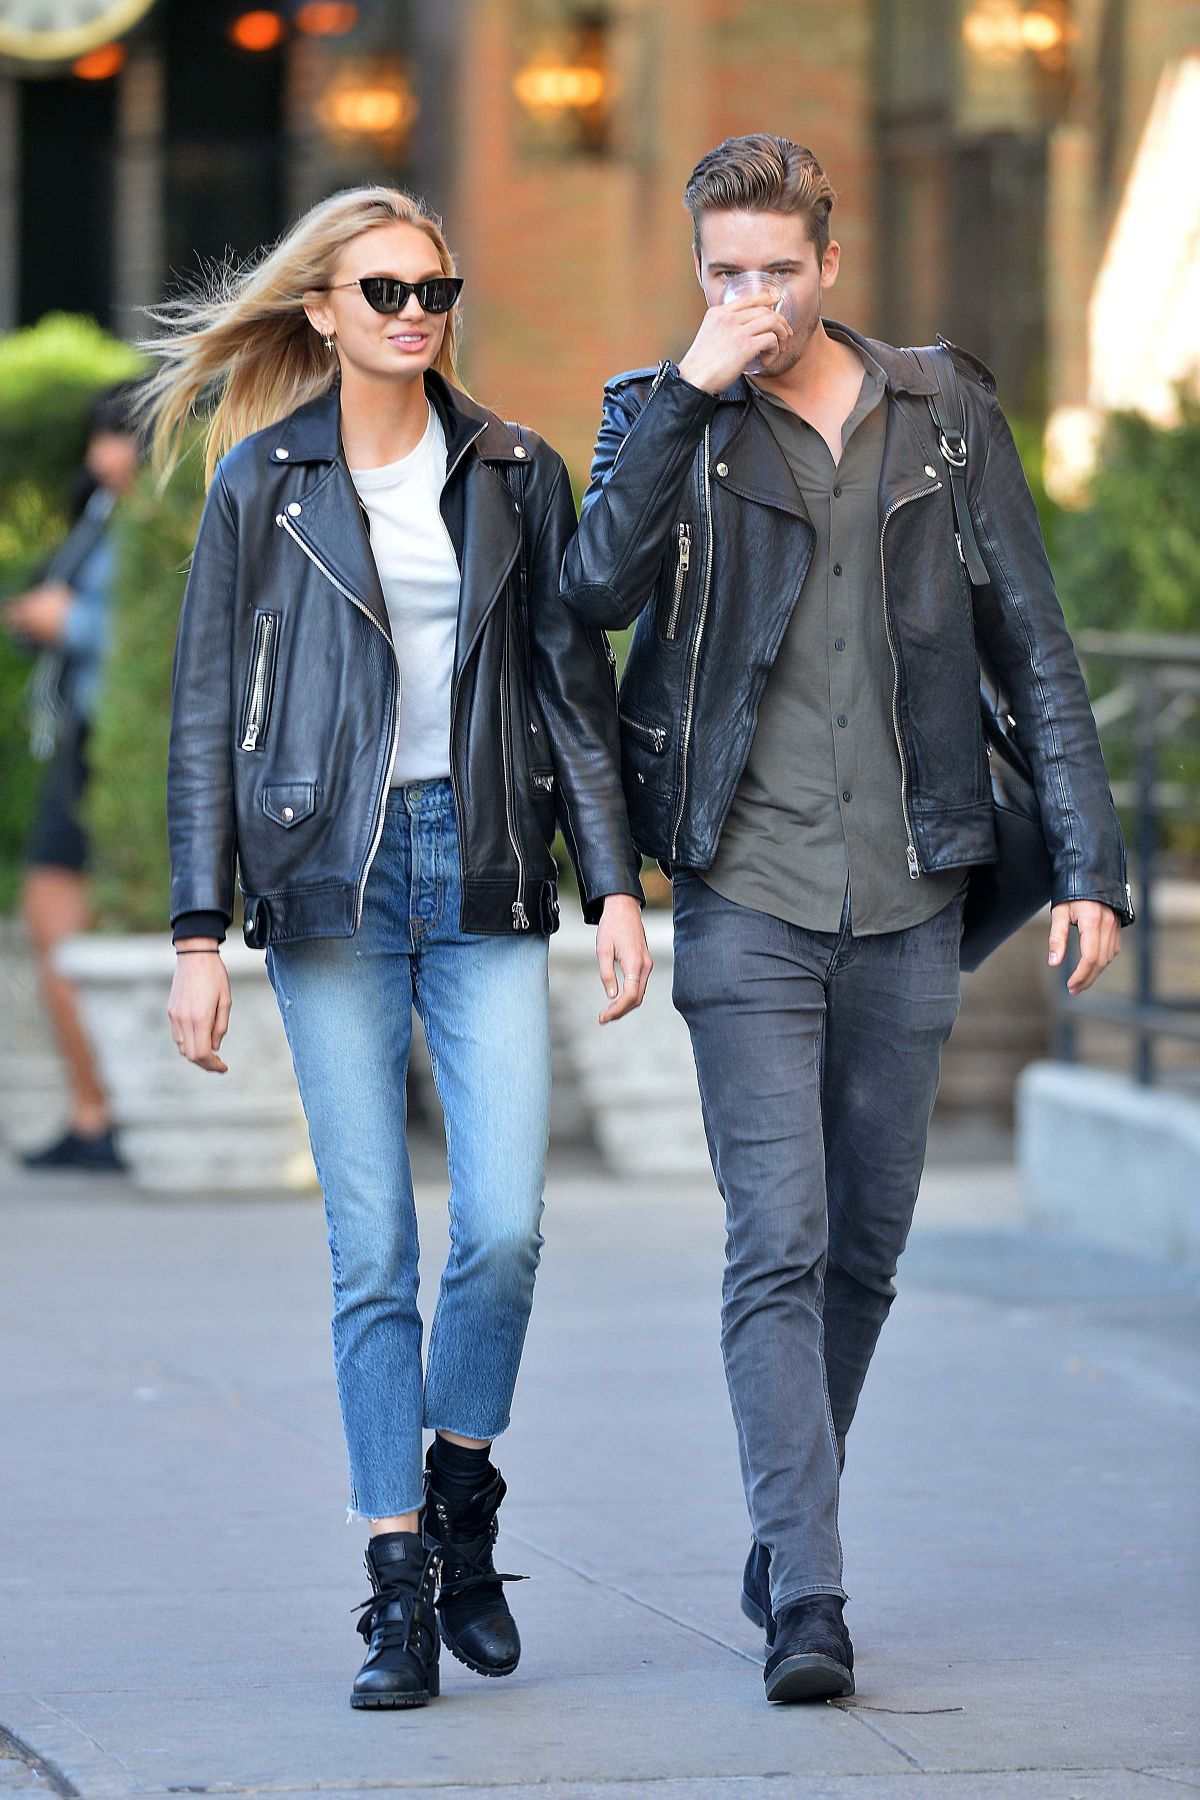 092d8504131d87 ROMEE STRIJD and Her Boyfriend Laurens Van Leeuwen Out and About in New  York 10/22/2017